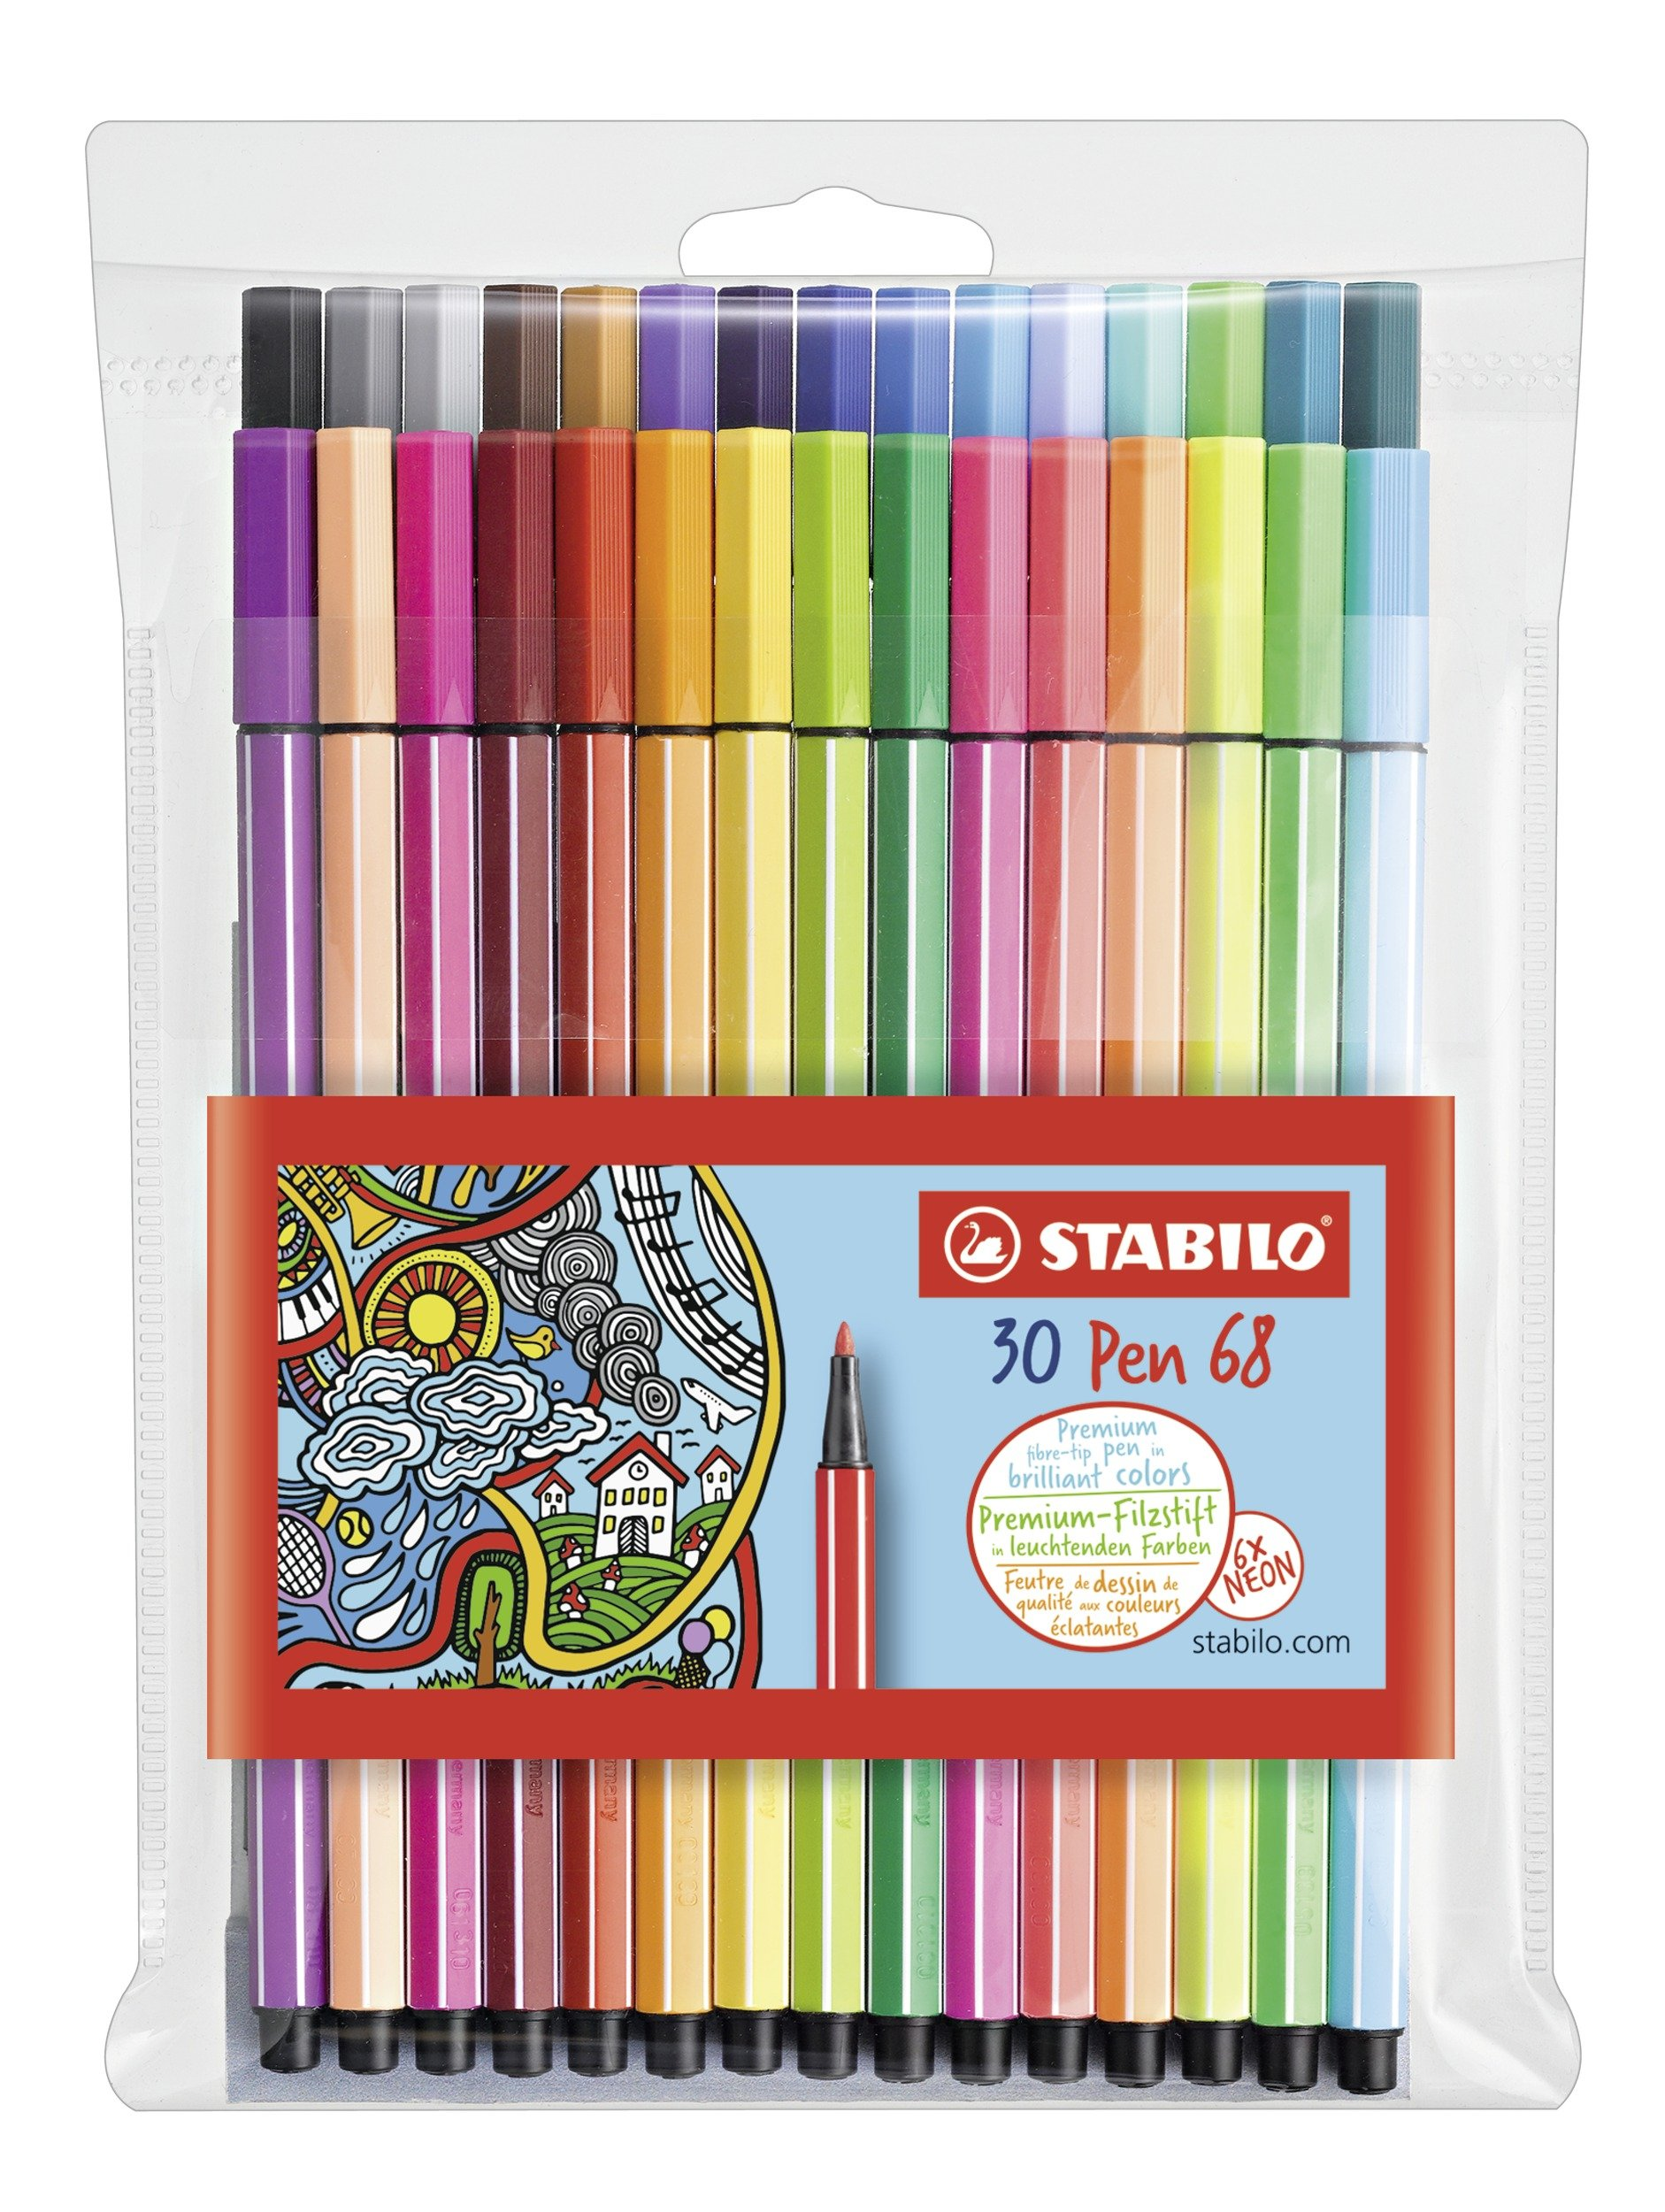 Stabilo Pen 68 Coloring Felt-tip Marker Pen, 1 mm - 30-Color Wallet Set by STABILO